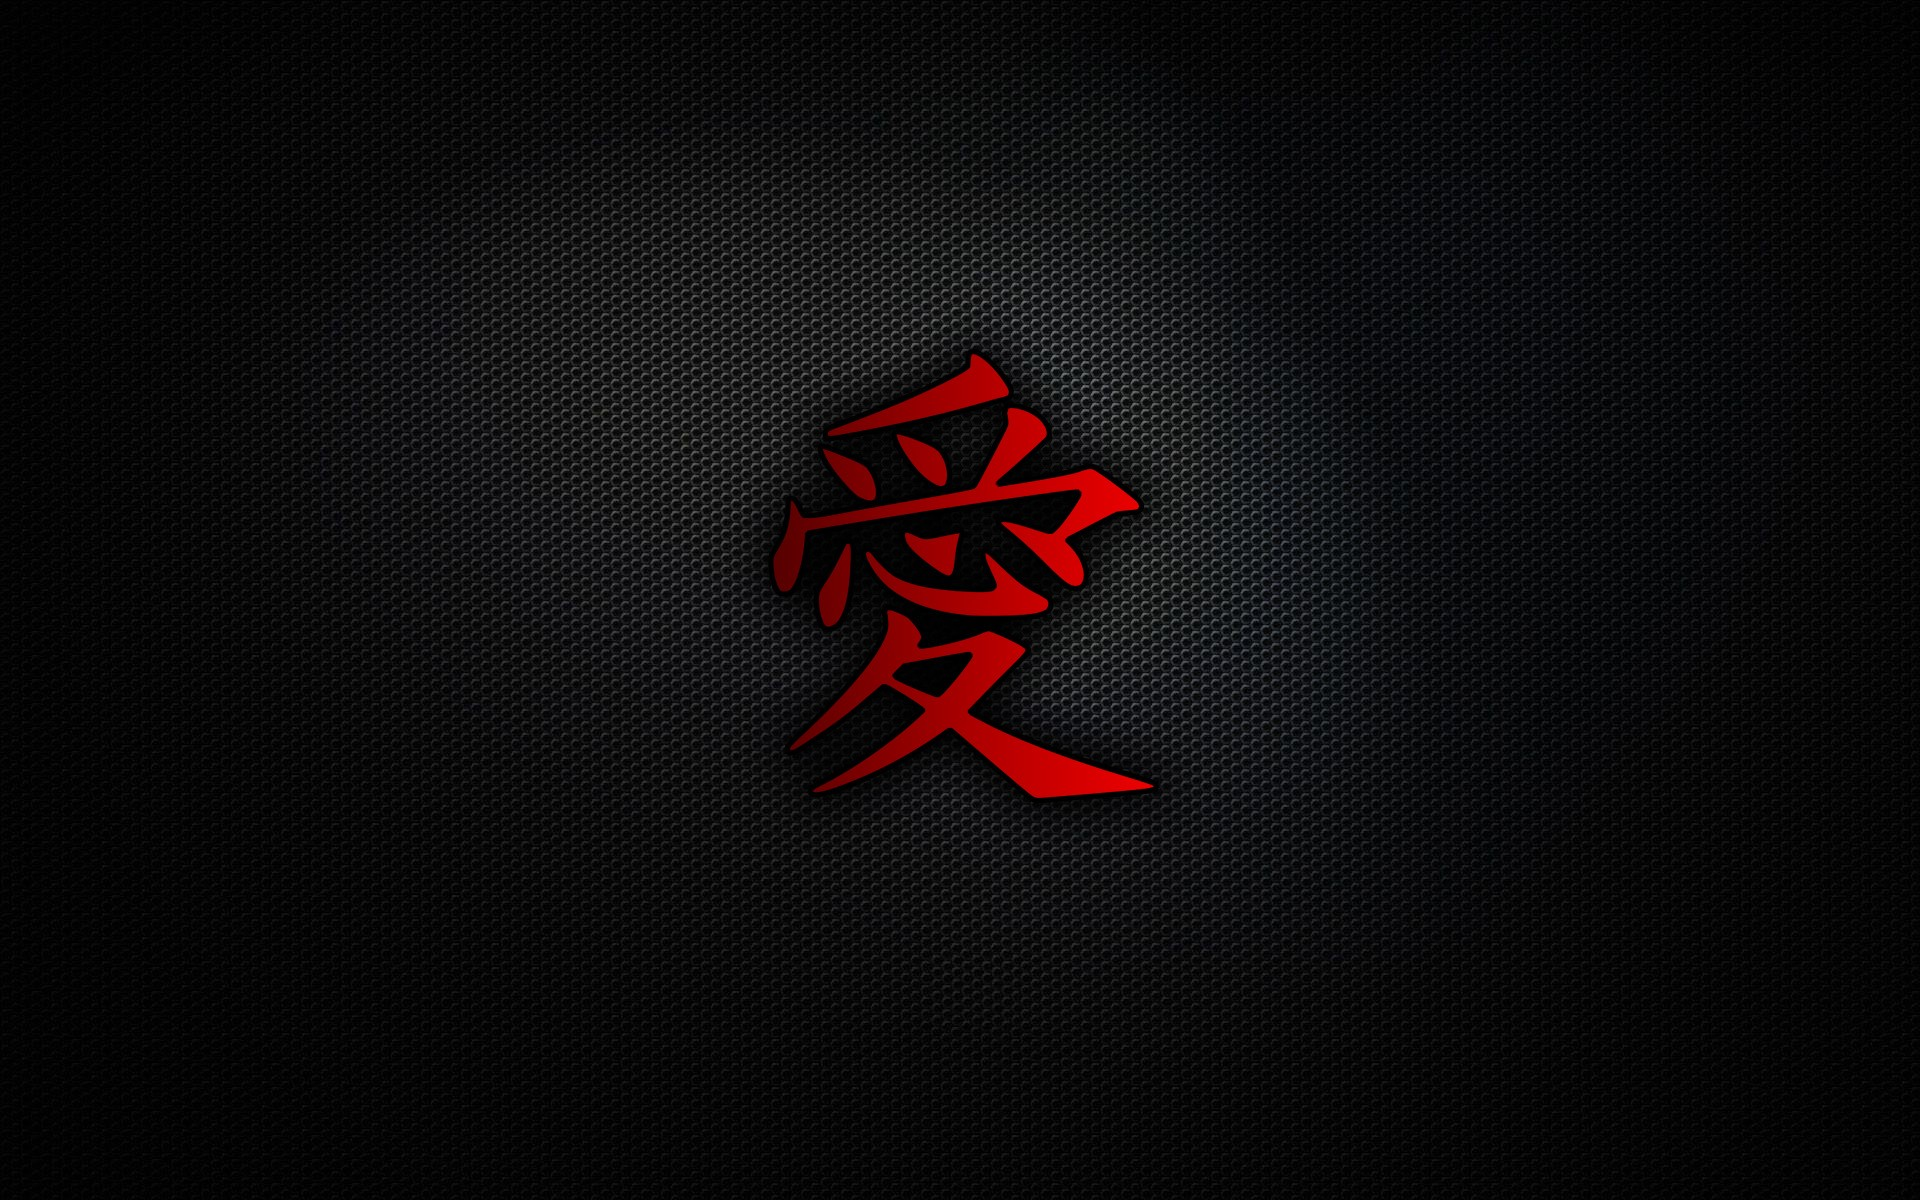 Dark Japanese Wallpaper